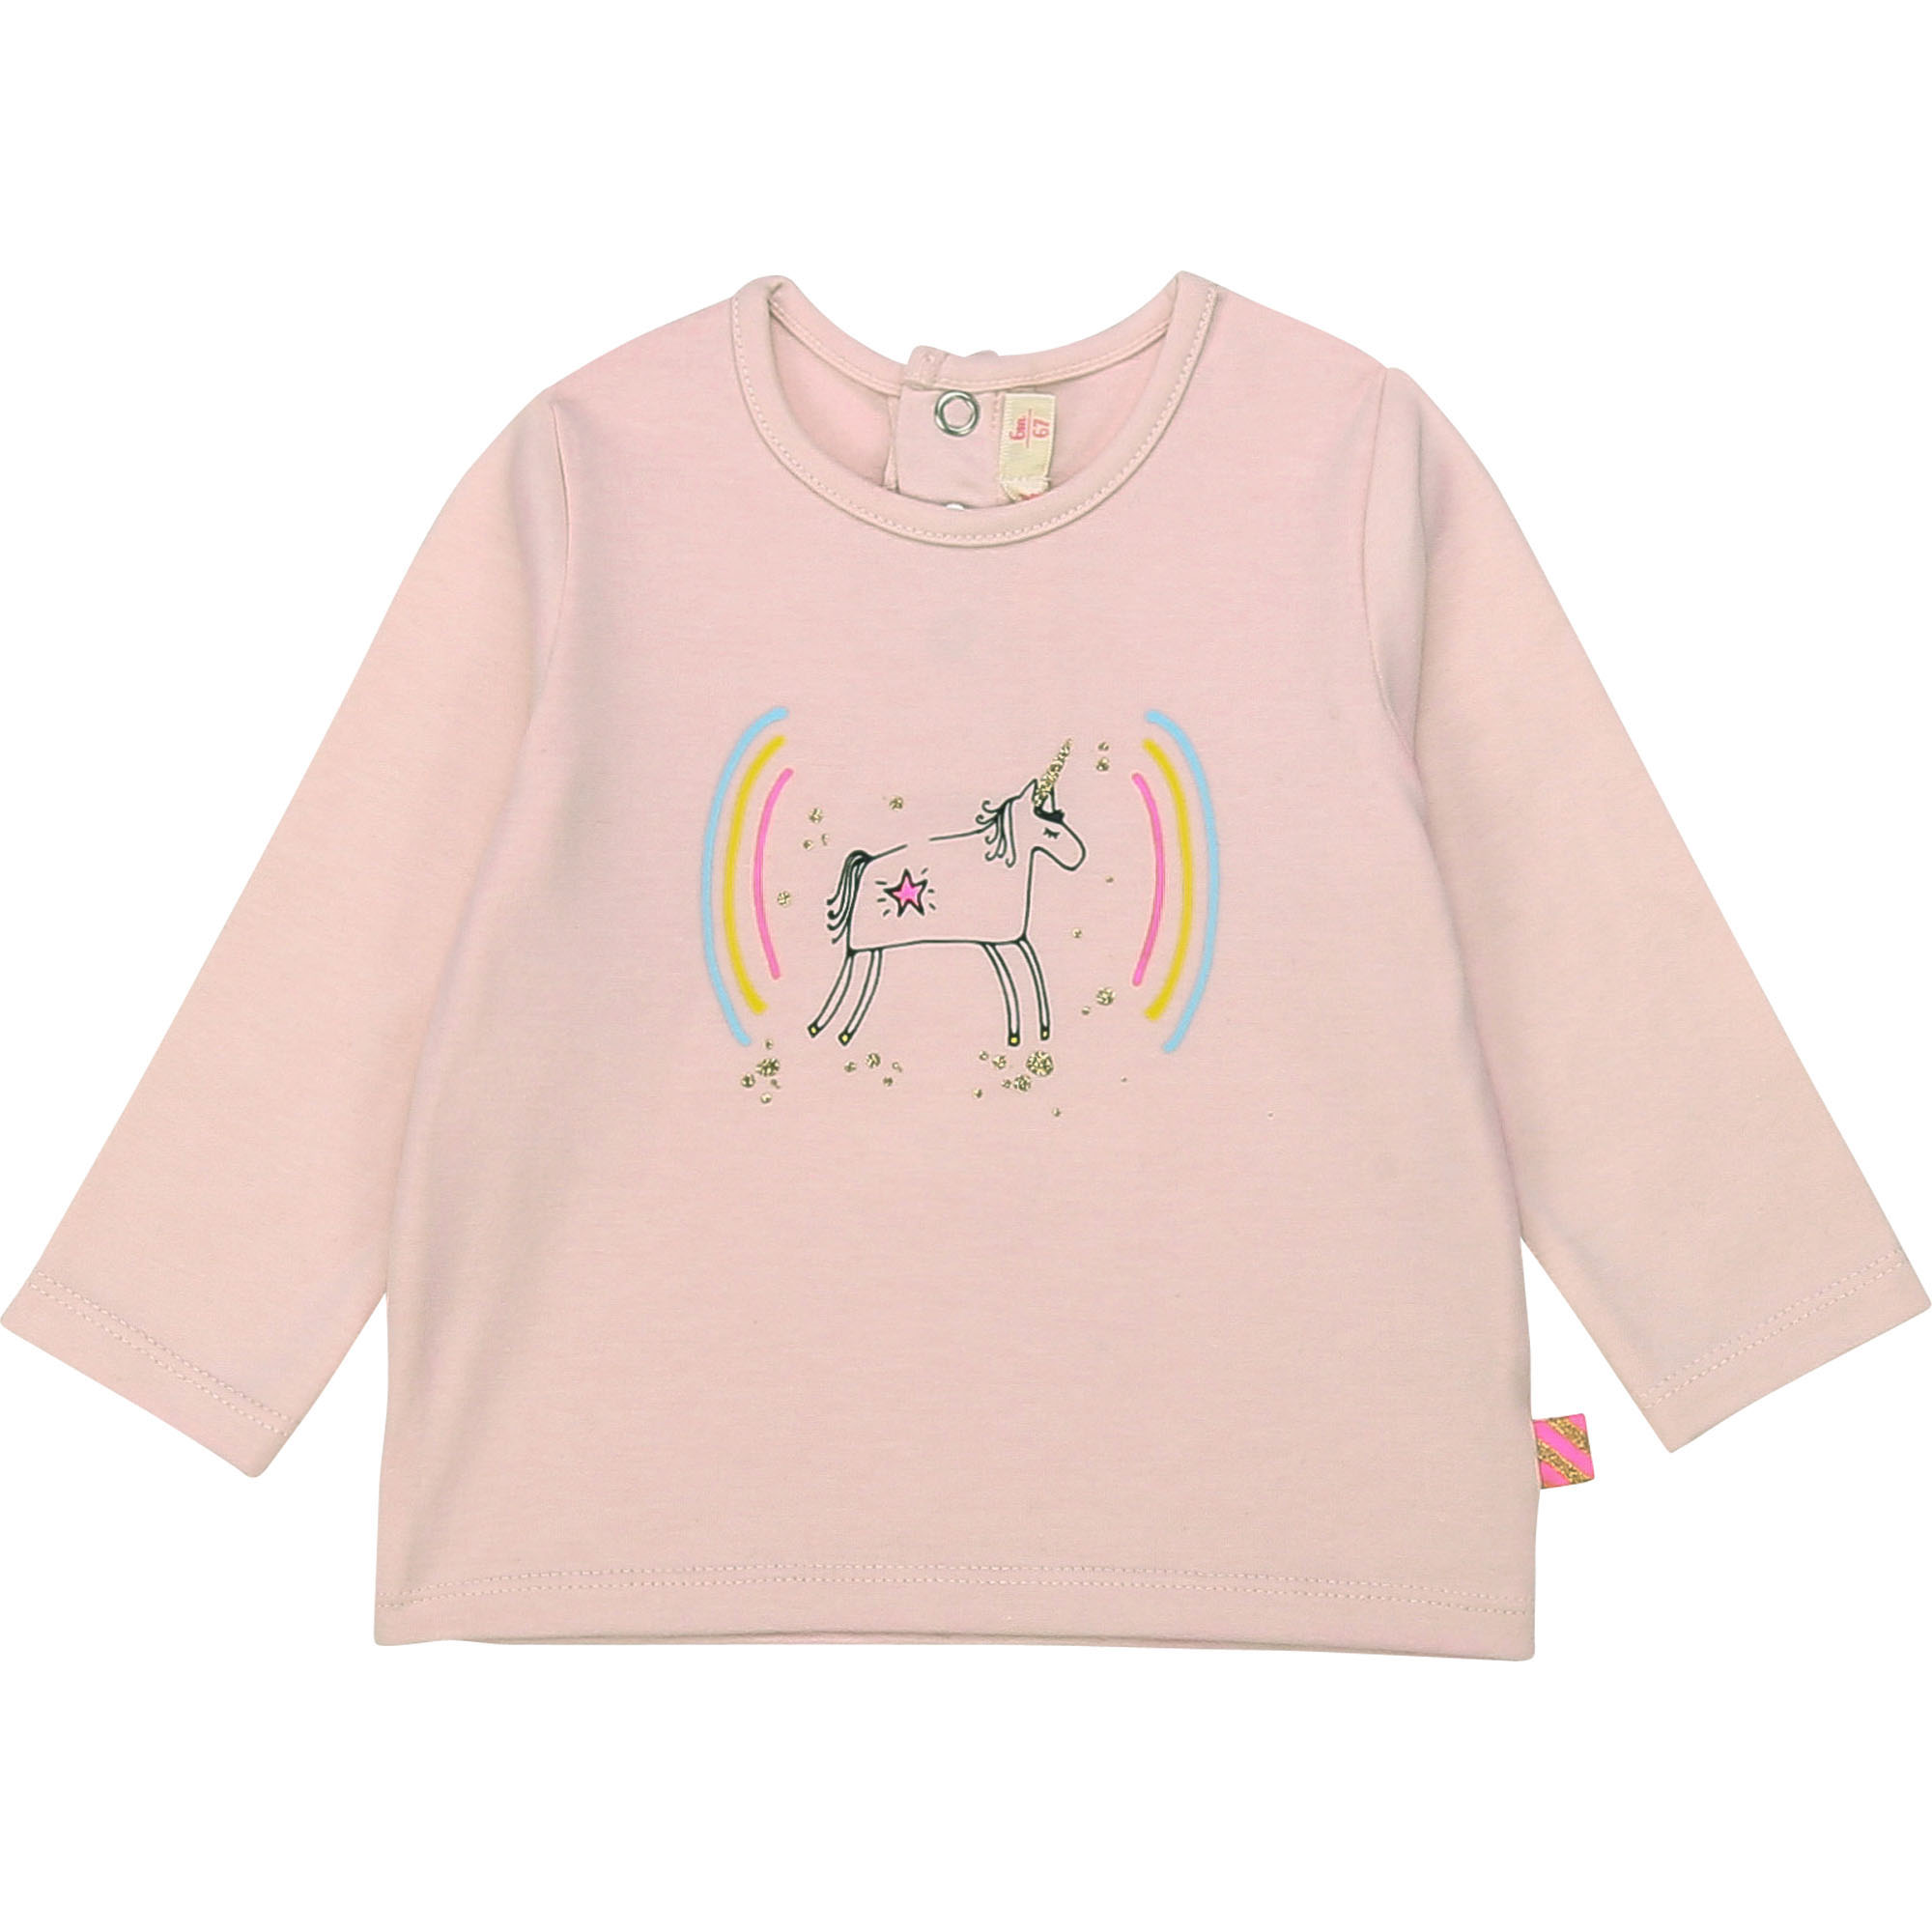 Illustrated cotton T-shirt BILLIEBLUSH for GIRL